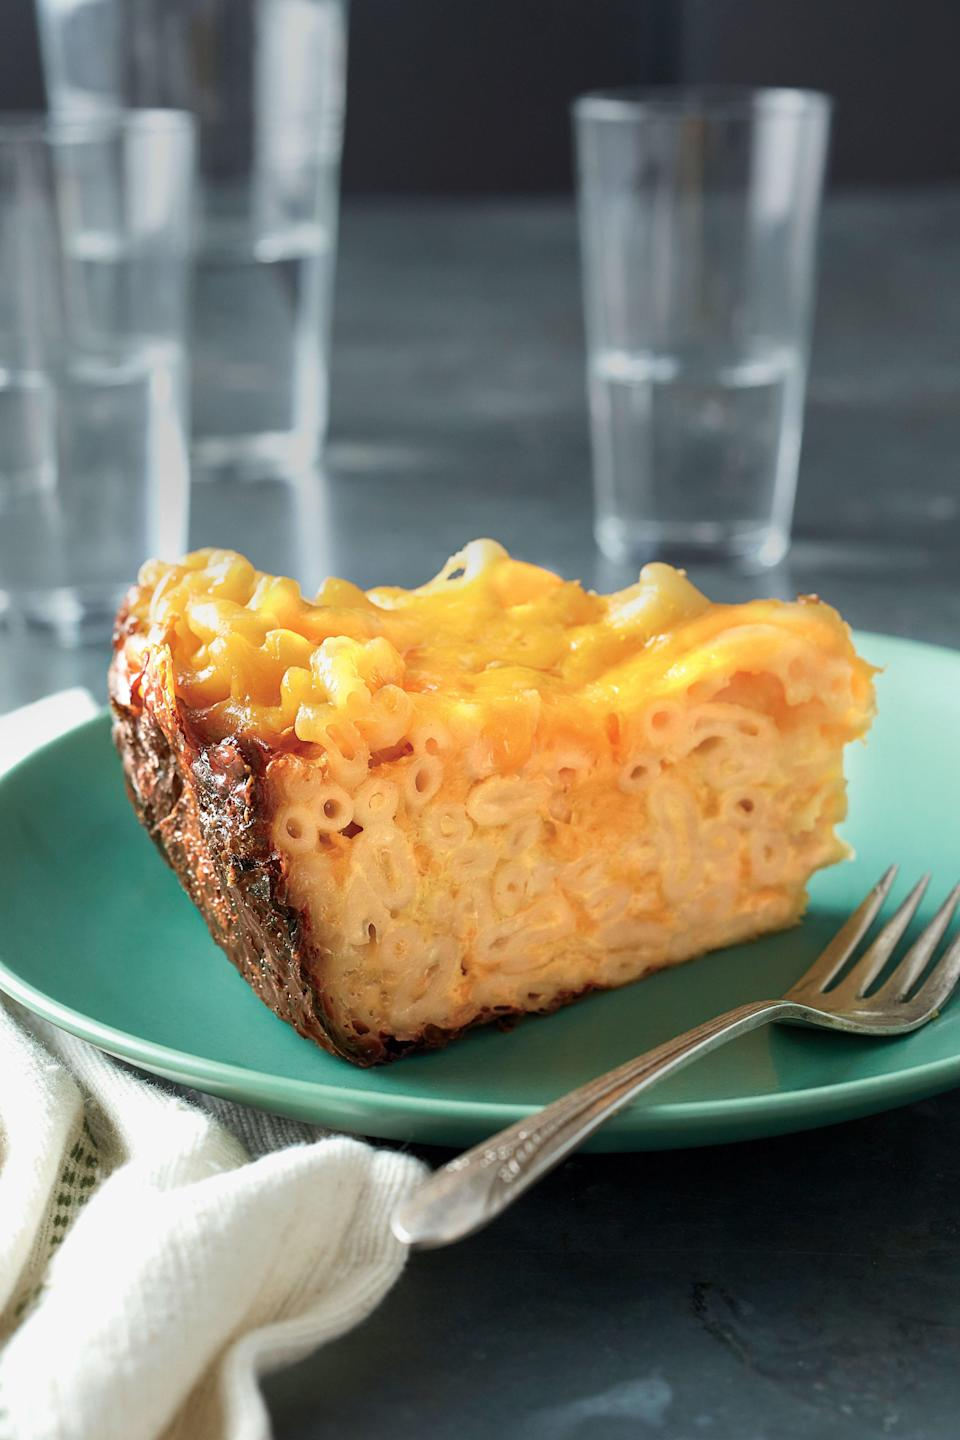 """<p><strong>Recipe: <a href=""""https://www.southernliving.com/syndication/uncle-jacks-mac-cheese"""" rel=""""nofollow noopener"""" target=""""_blank"""" data-ylk=""""slk:Uncle Jack's Mac-and-Cheese"""" class=""""link rapid-noclick-resp"""">Uncle Jack's Mac-and-Cheese</a></strong></p> <p>Classic cafeteria-style goodness, this recipe yields enough to serve as a side for a crowd, or it could be dinner for a family of four. Recipe by Pam Rawlinson, North Augusta, South Carolina.</p>"""